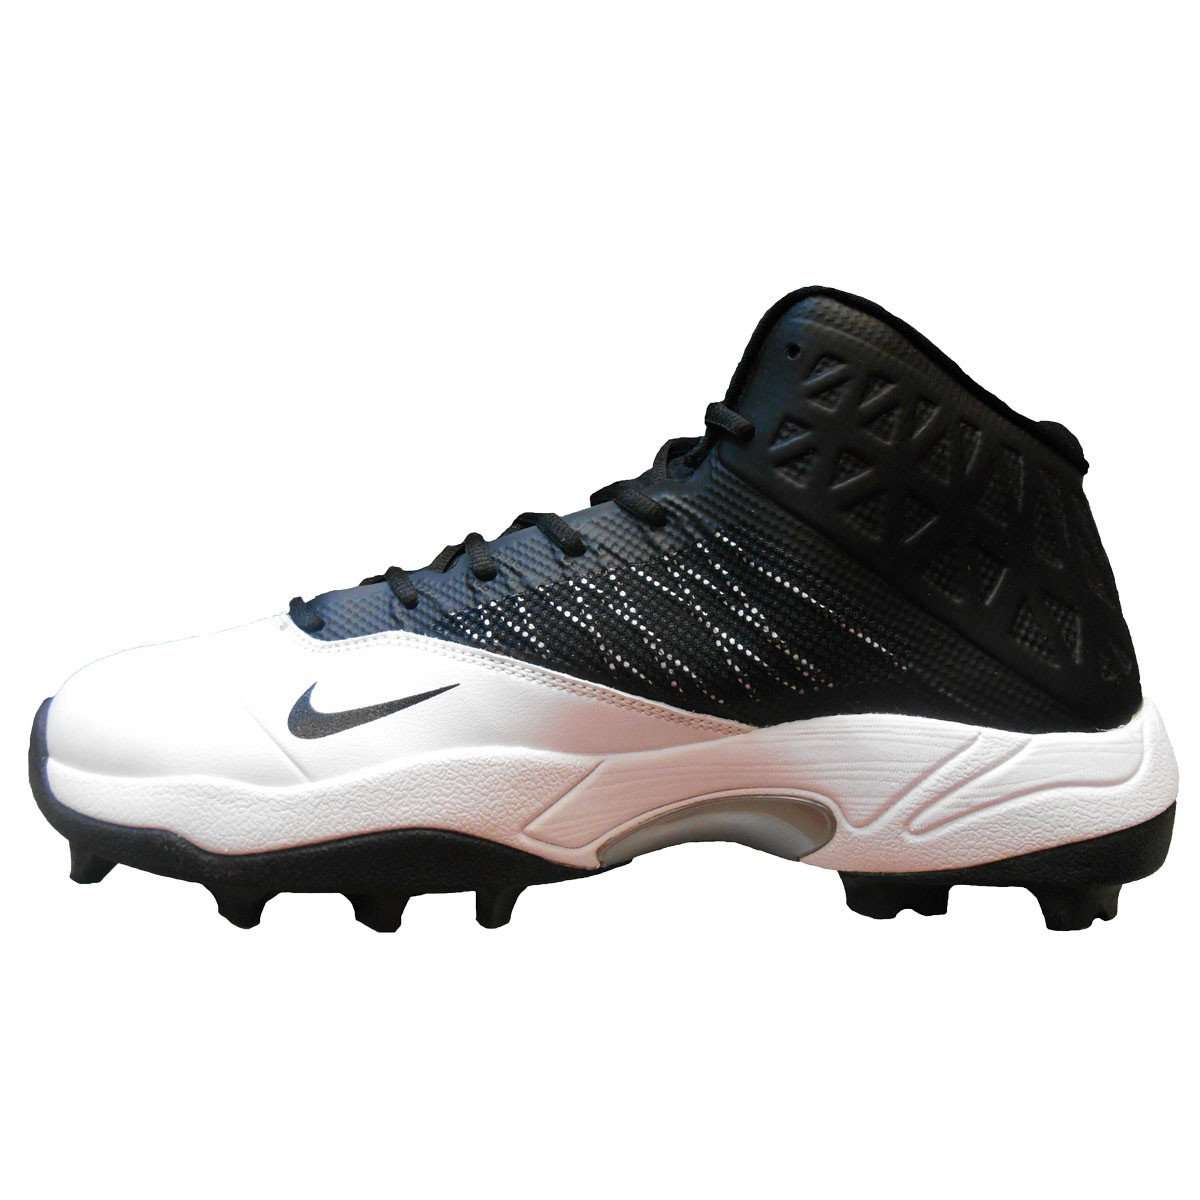 bedb2362b2bb4 ... Nike Zoom Code Elite 3 4 Shark Football Cleats - League Outfitters ...